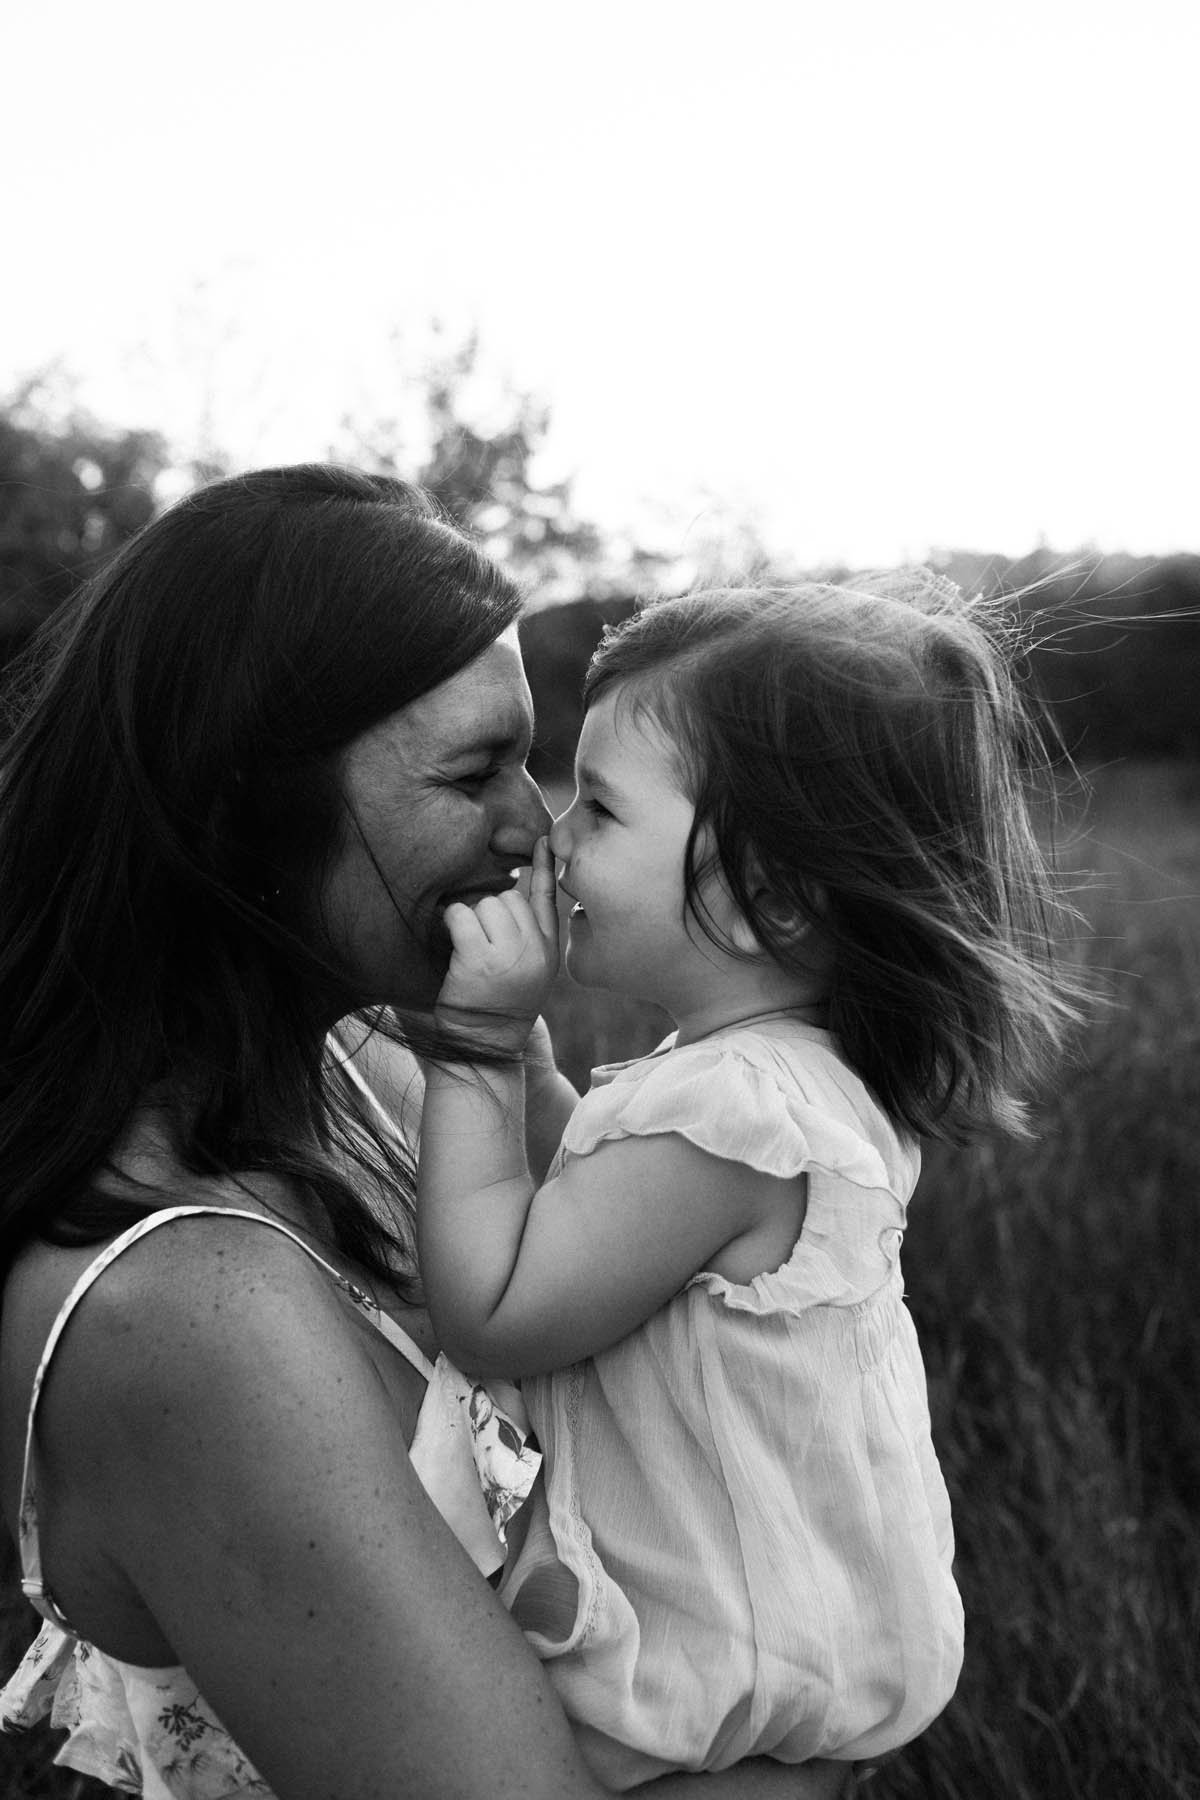 Mom and daughter touching nose to nose during photo session, Photo by Elle Baker Photography